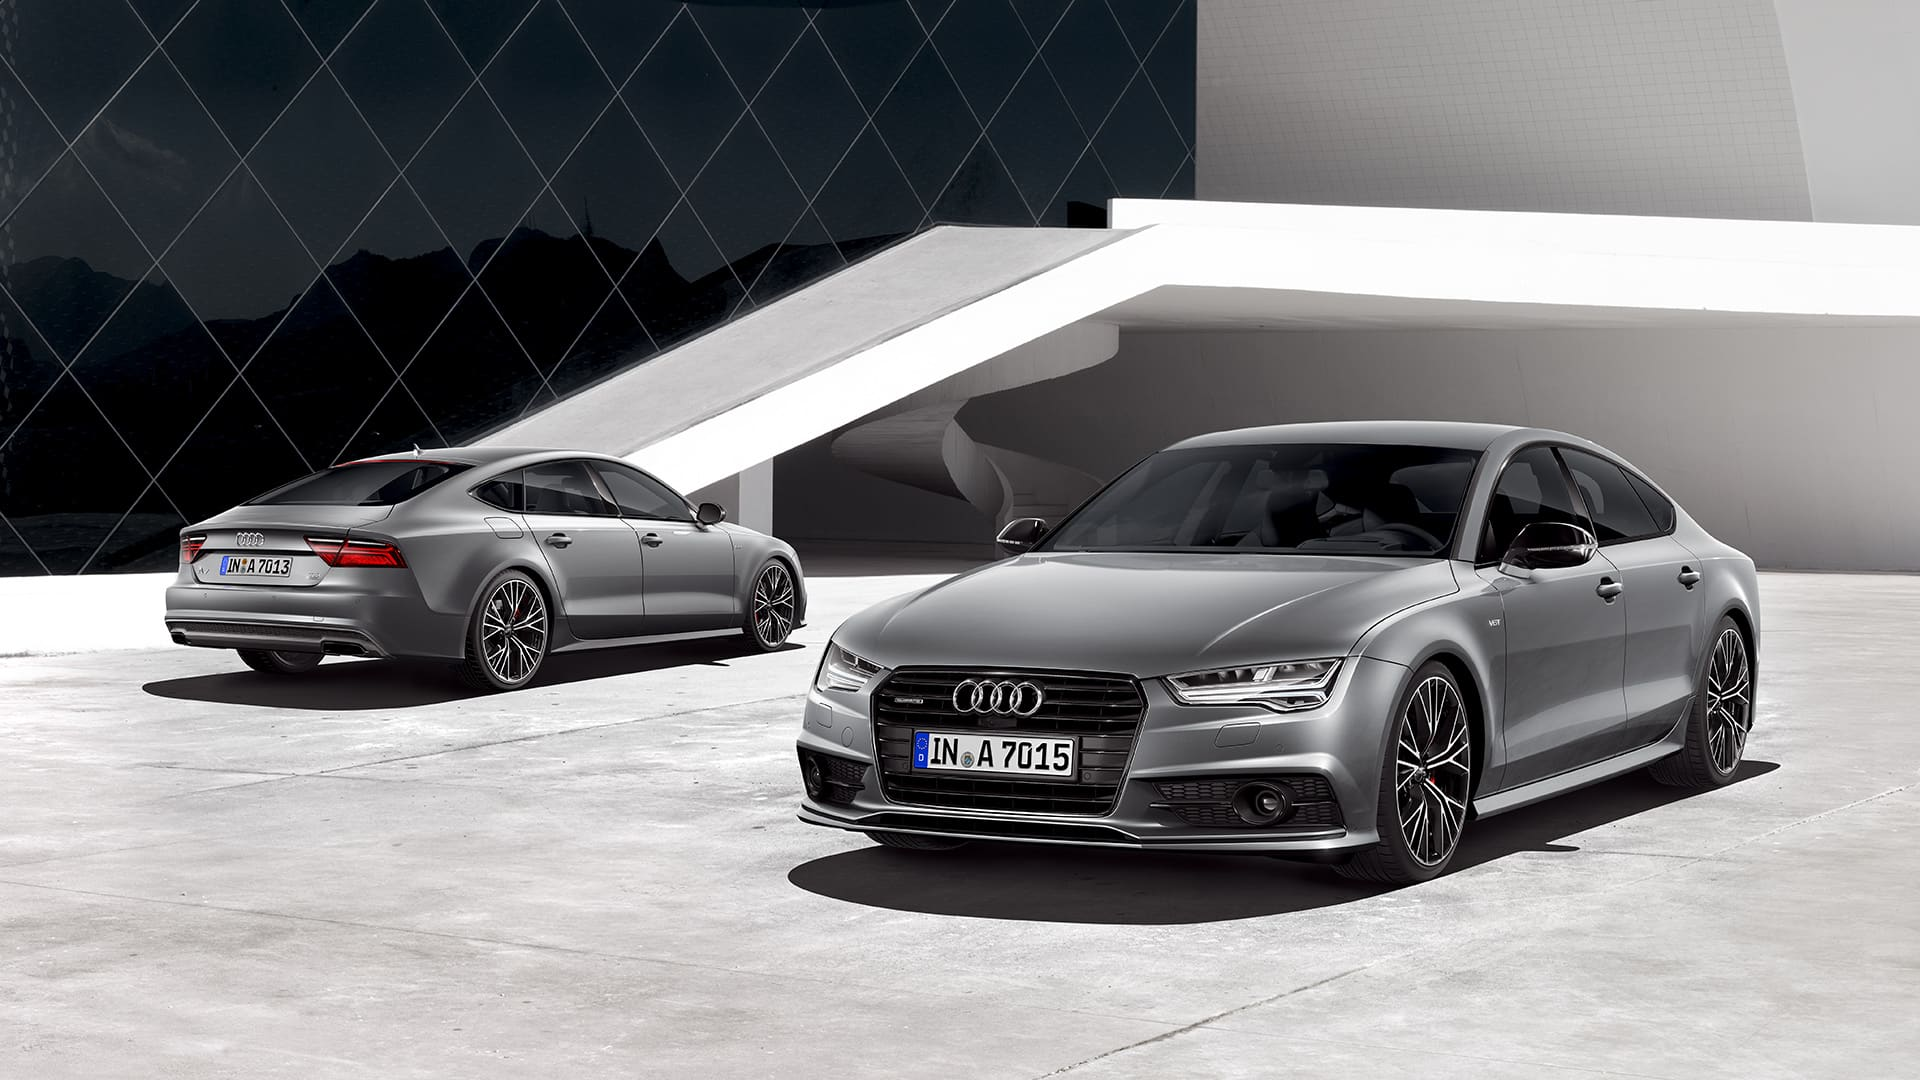 audi a7 sportback audi curacao. Black Bedroom Furniture Sets. Home Design Ideas